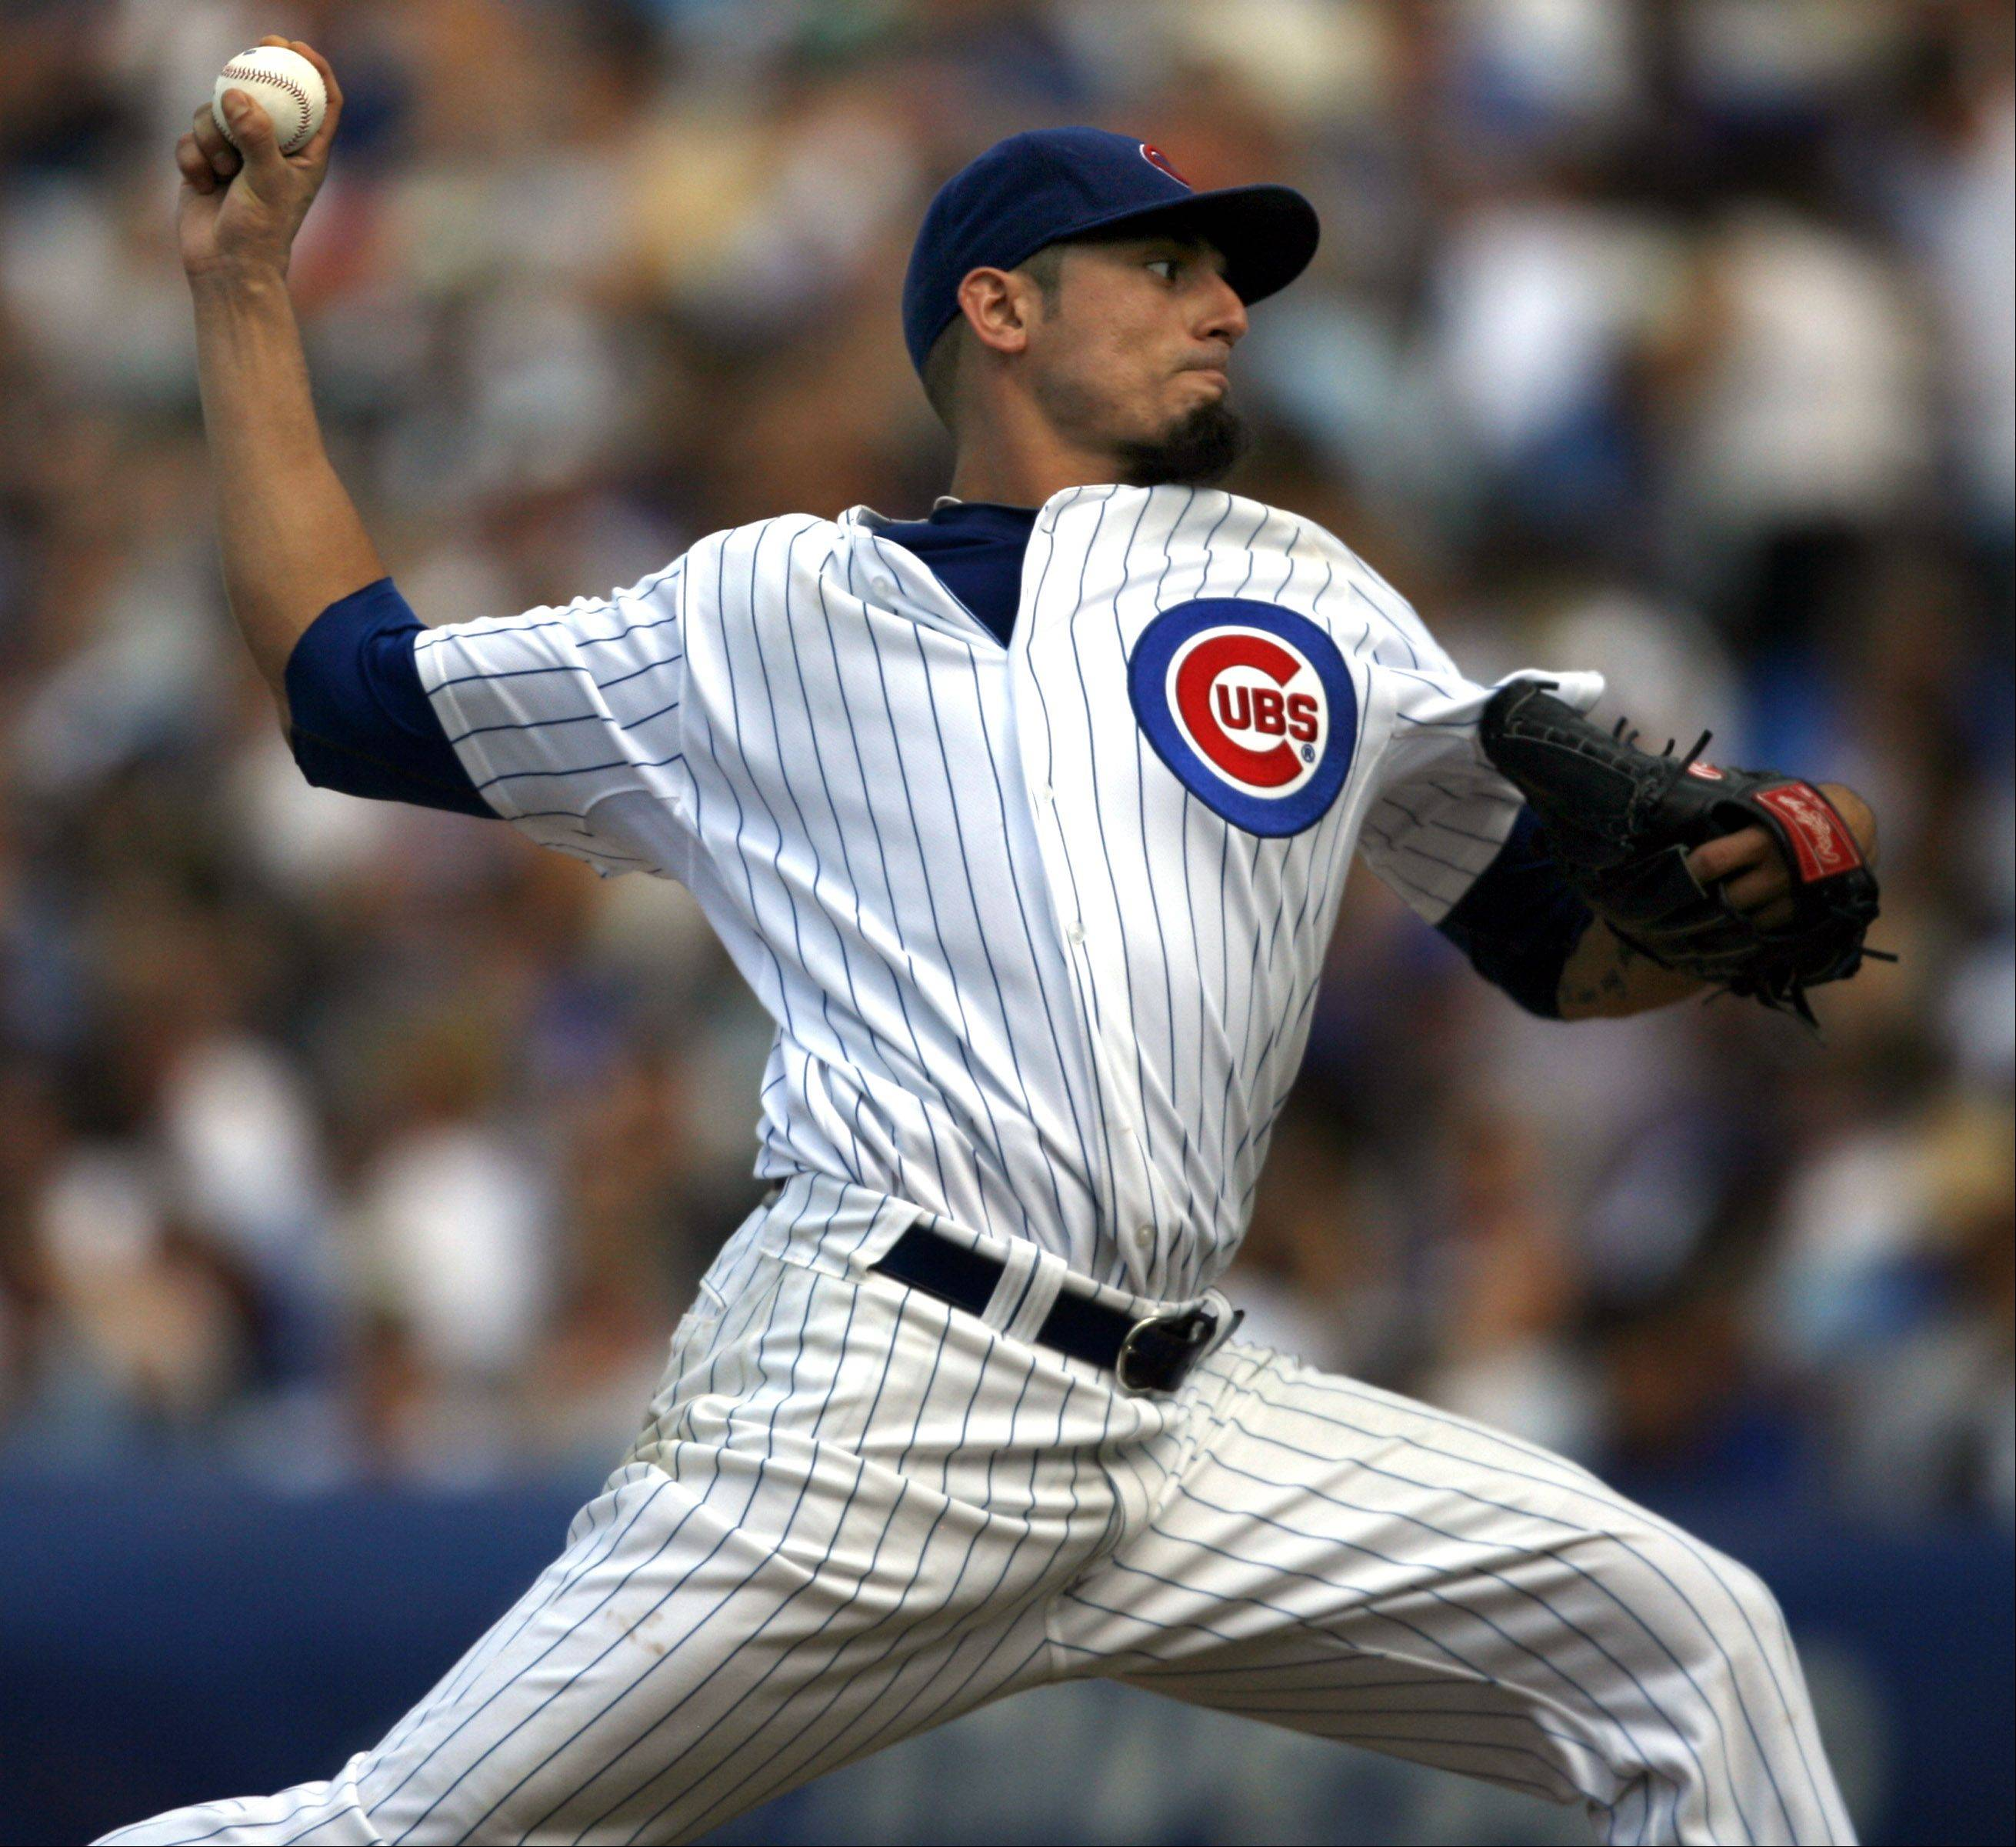 Cubs pitcher Matt Garza loses 1-0 against the White Sox at Wrigley Field on Saturday.